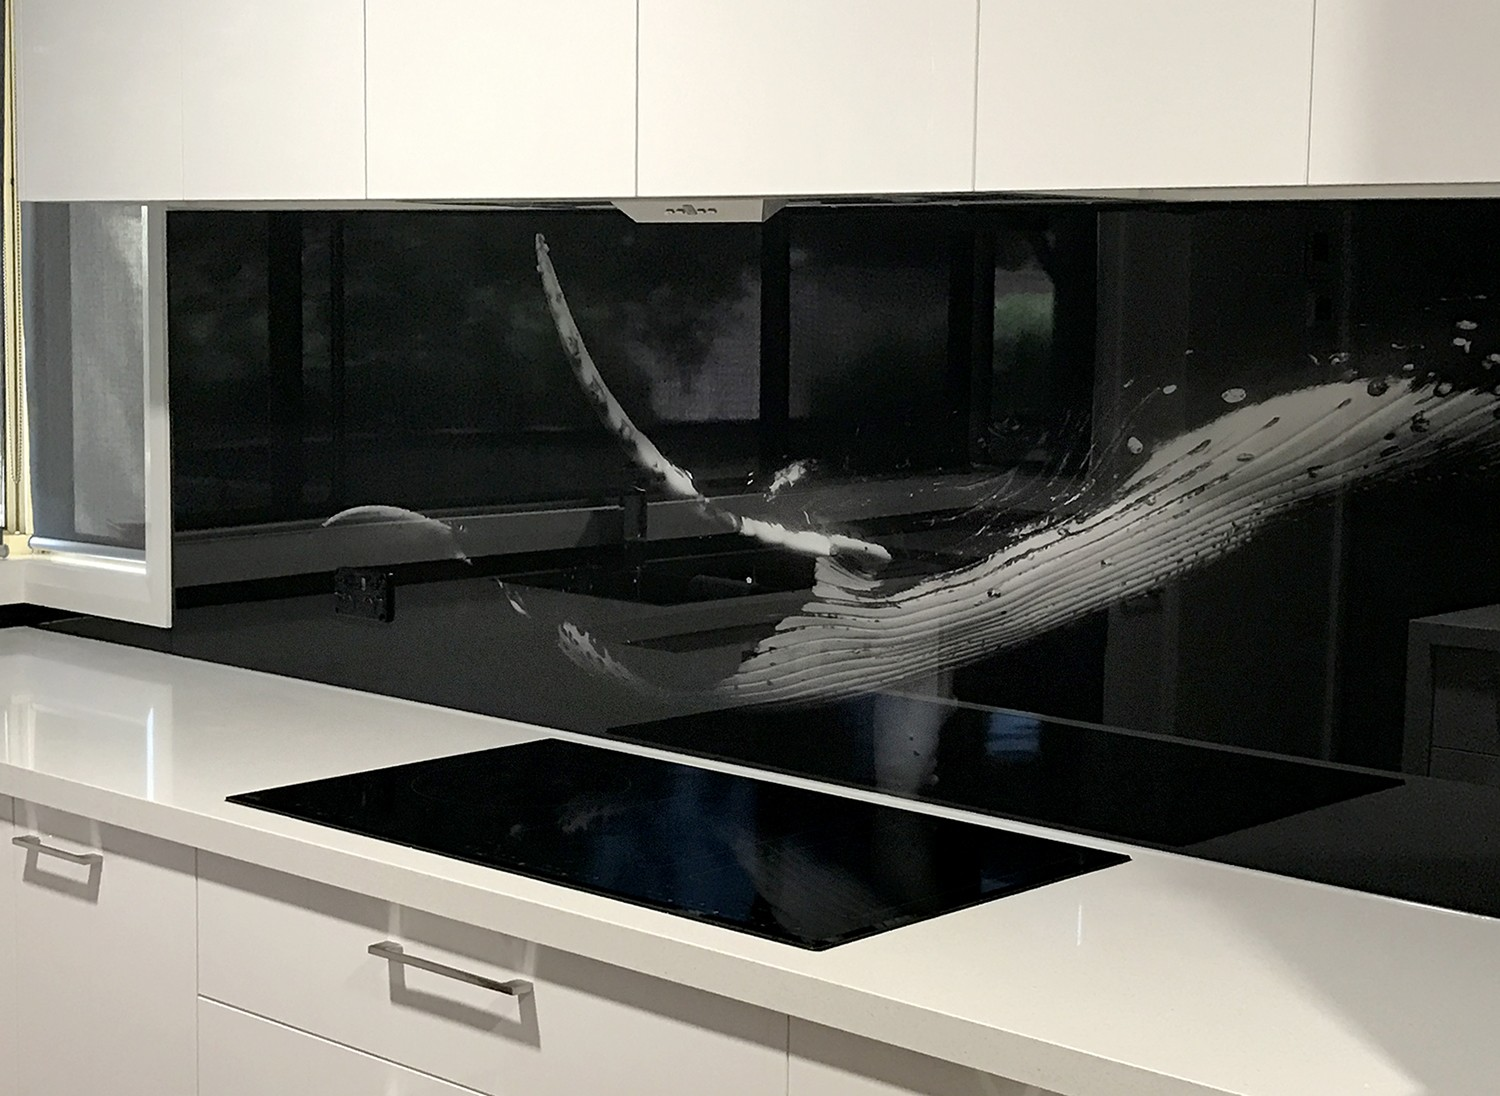 House of Splashbacks - Whale Printed Glass